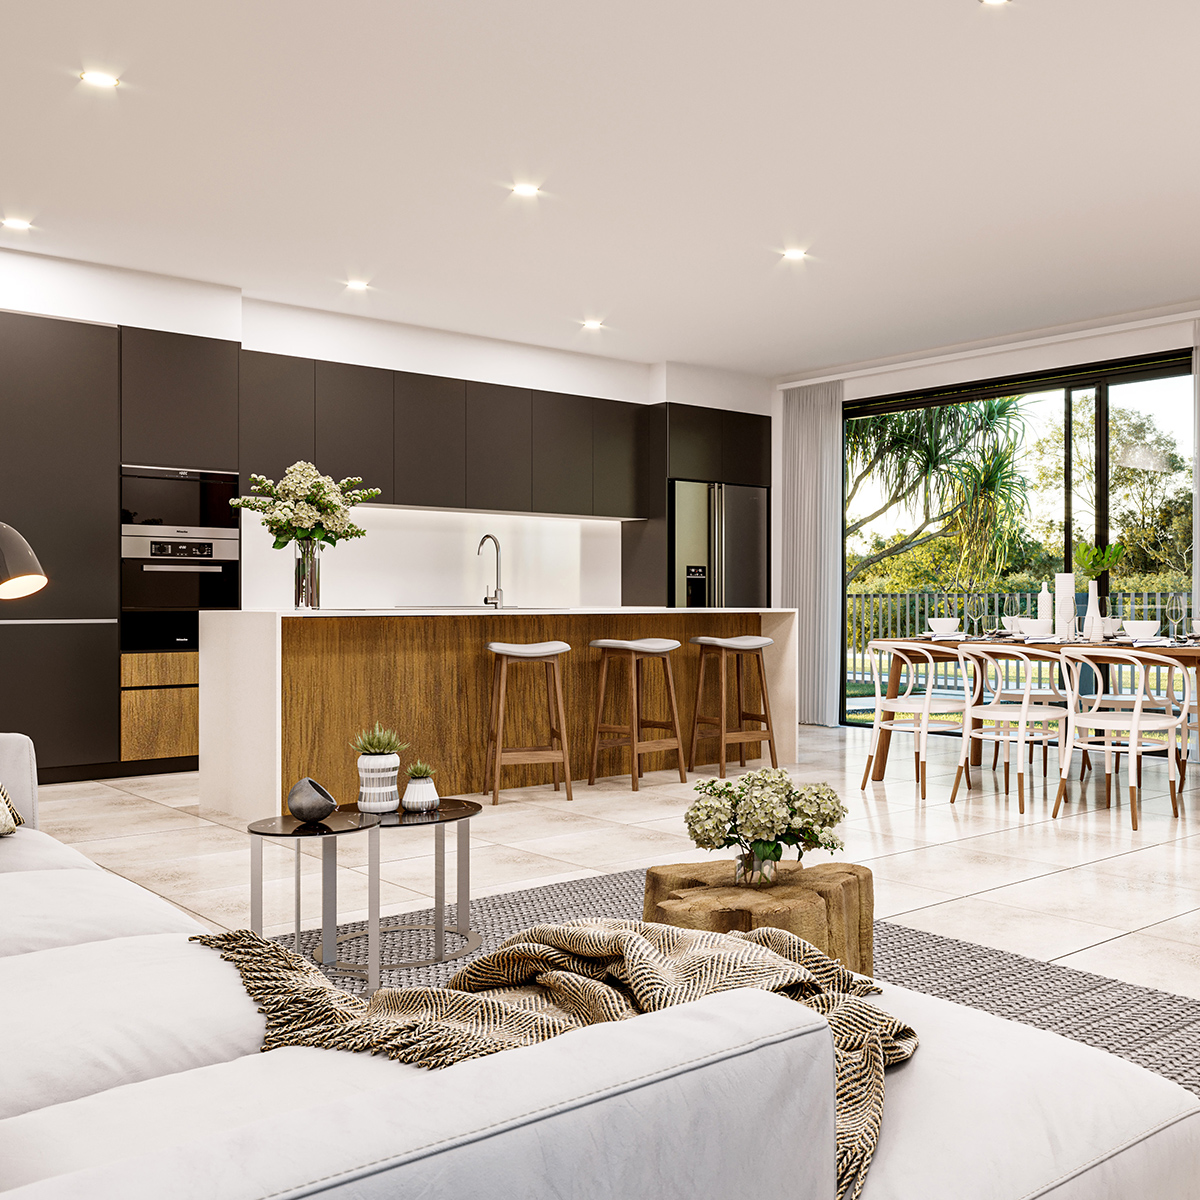 THE SIGNATURE TERRACE COLLECTION